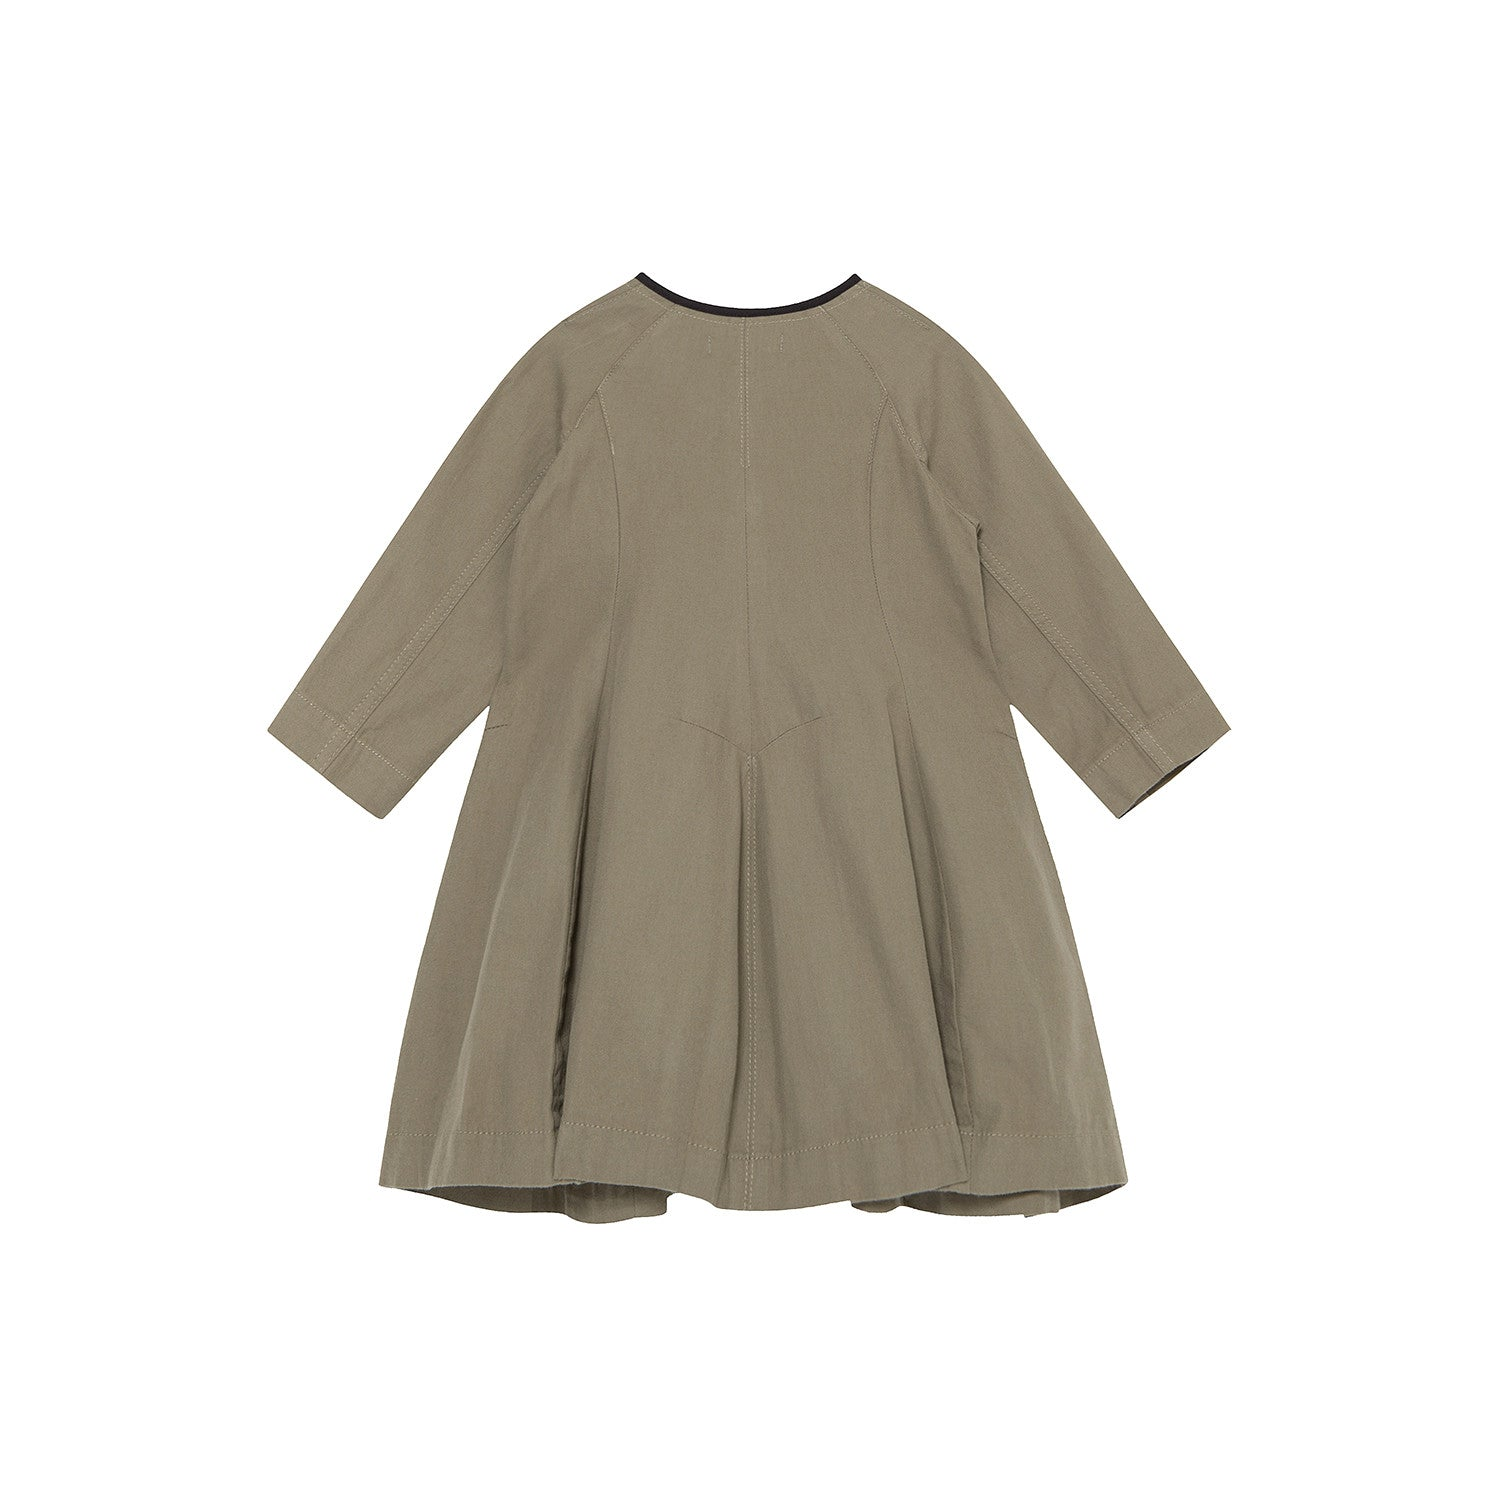 Bene Bene Khaki Dart Dress